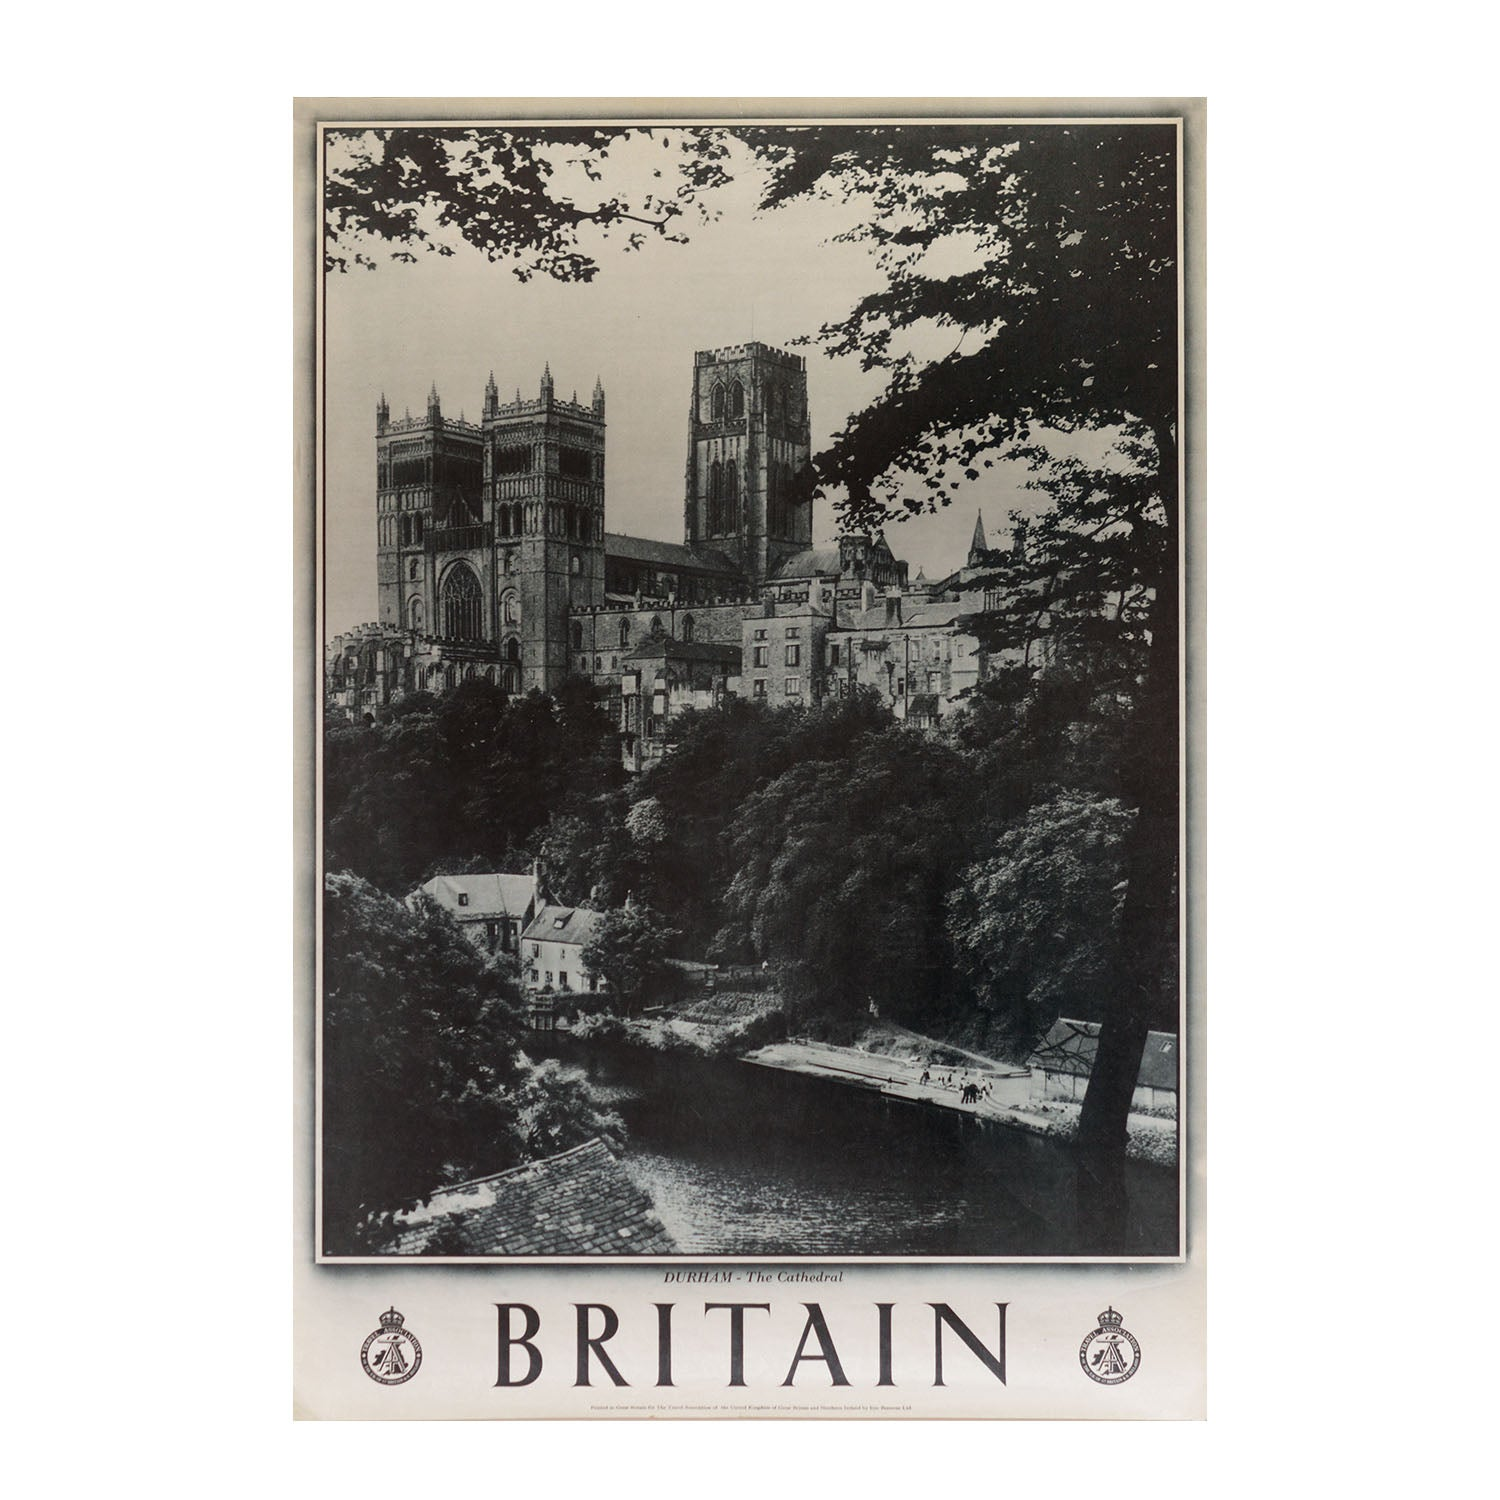 A lovely photographic poster showing Durham Cathedral and the River Wear, published by the British Travel Association